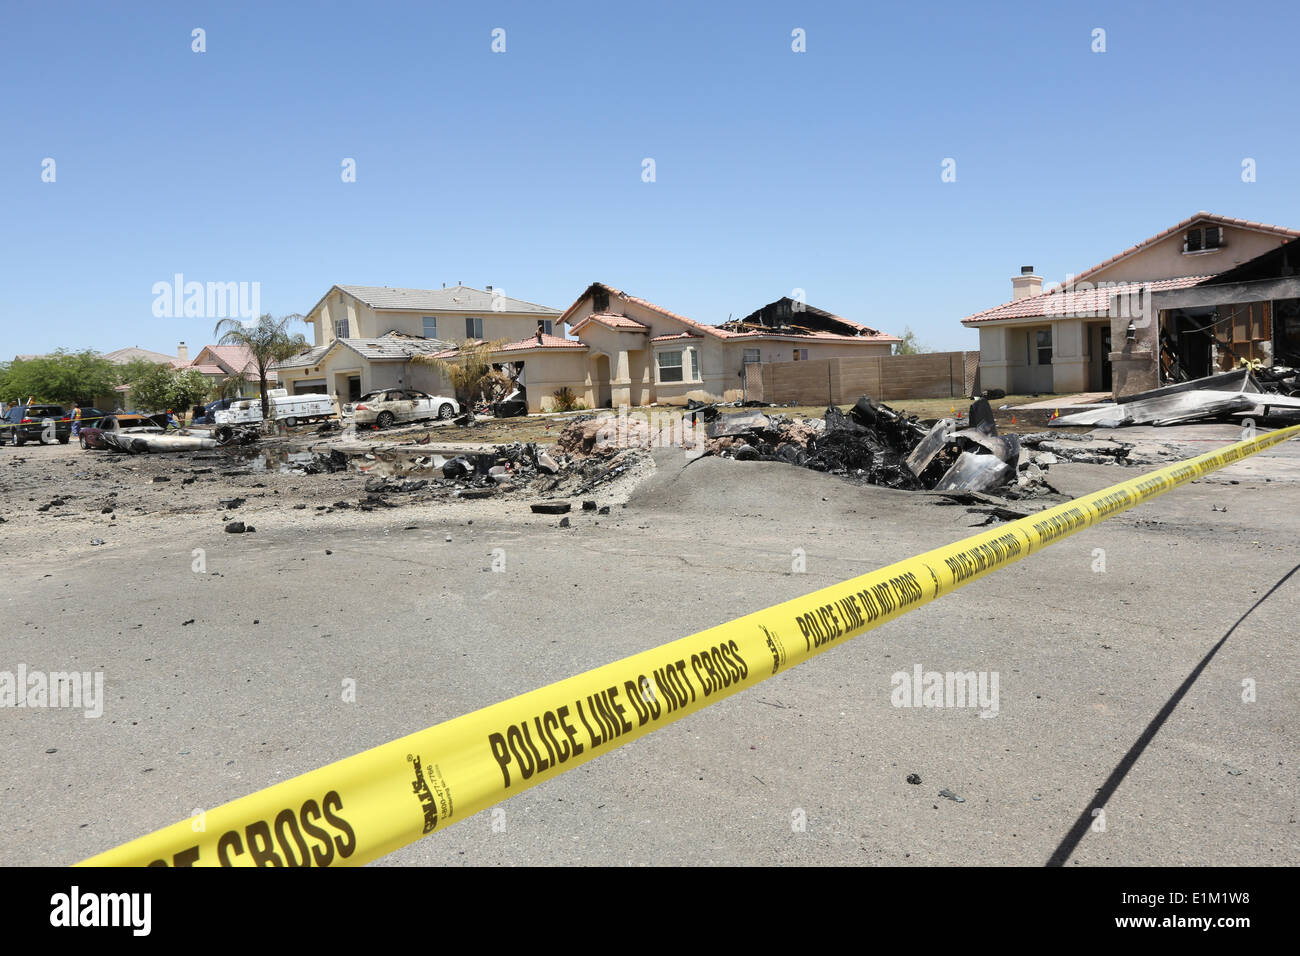 Homes damaged when a US Marine Corps AV-8B Harrier fighter aircraft crashed in a housing development June 5, 2014 in Imperial, California. Eight homes were evacuated with three destroyed but no injuries reported. - Stock Image